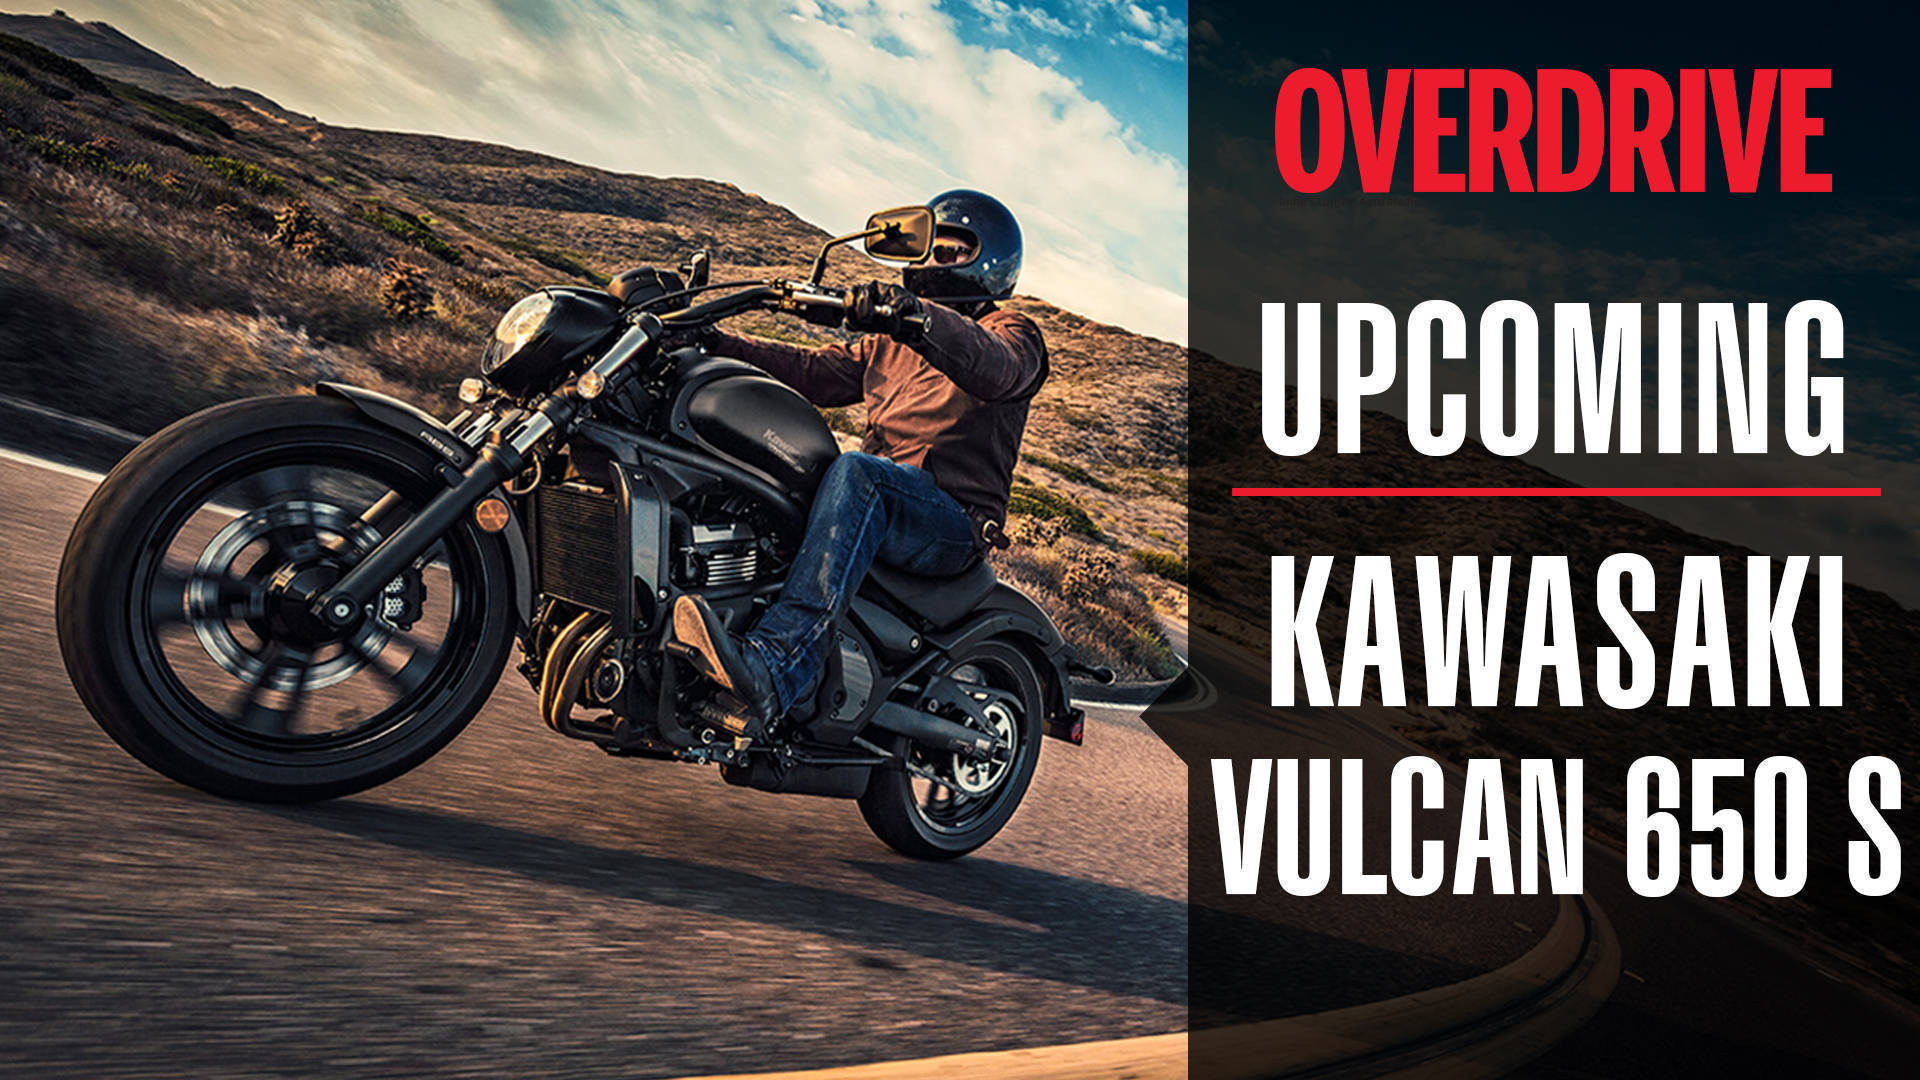 Kawasaki Vulcan 650 S | Engine and features